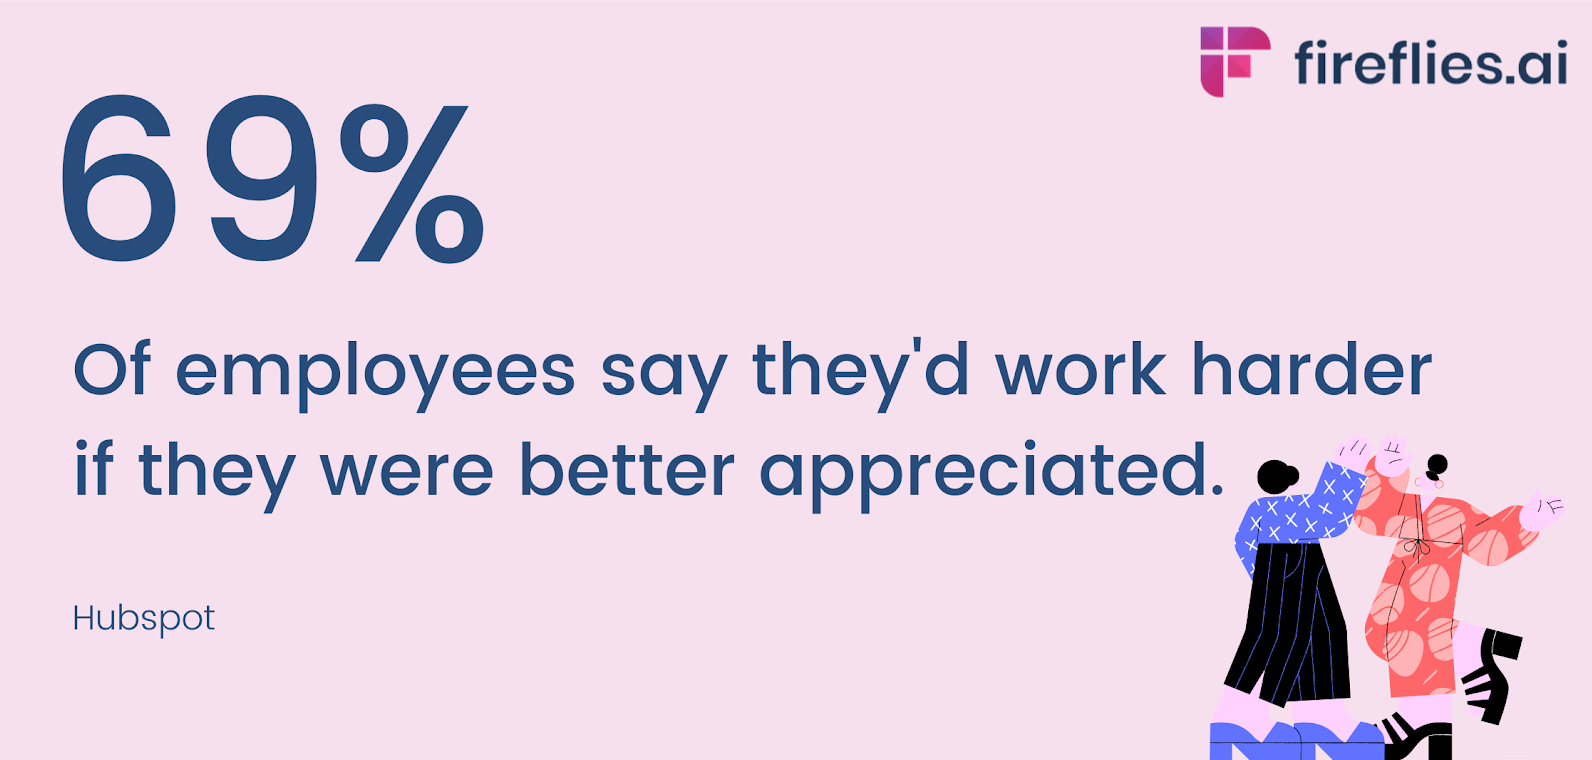 69% of employees say they'd work harder if they were better appreciated - another reason why organizational culture is so important